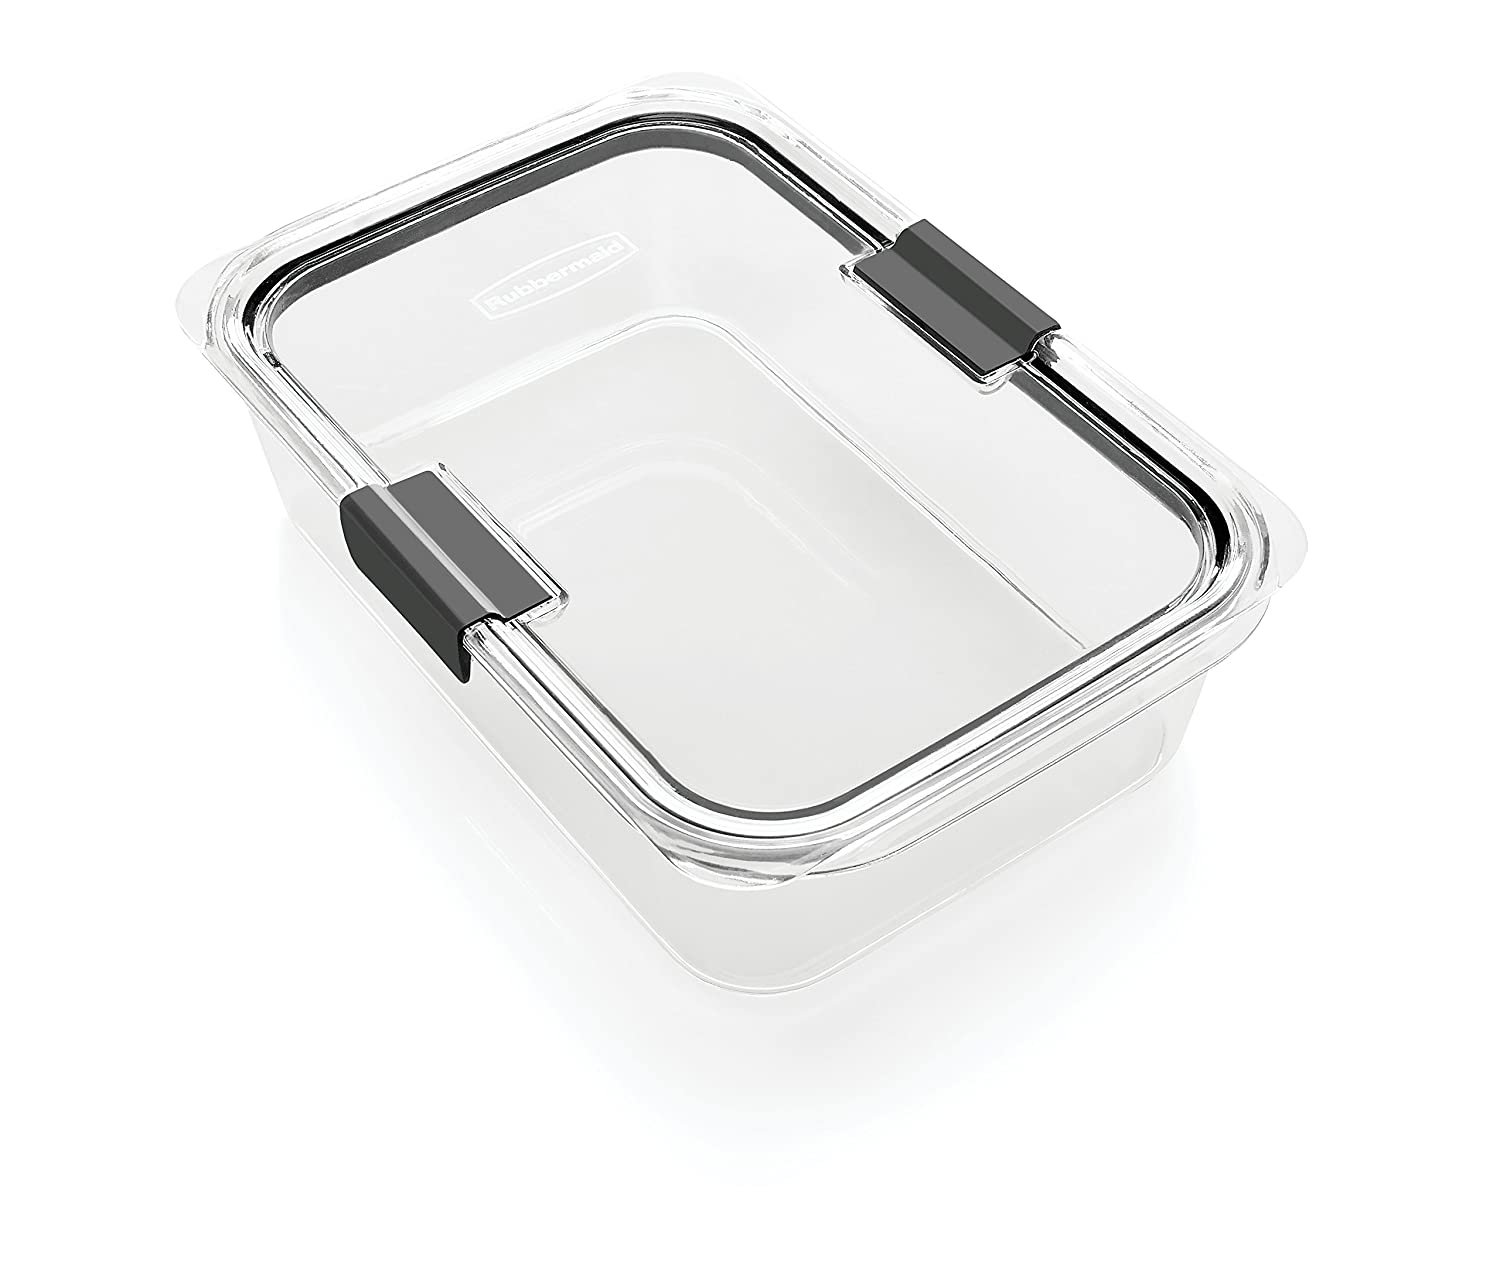 Rubbermaid Brilliance Food Storage Container, Large, 9.6 Cup, Clear 1991158